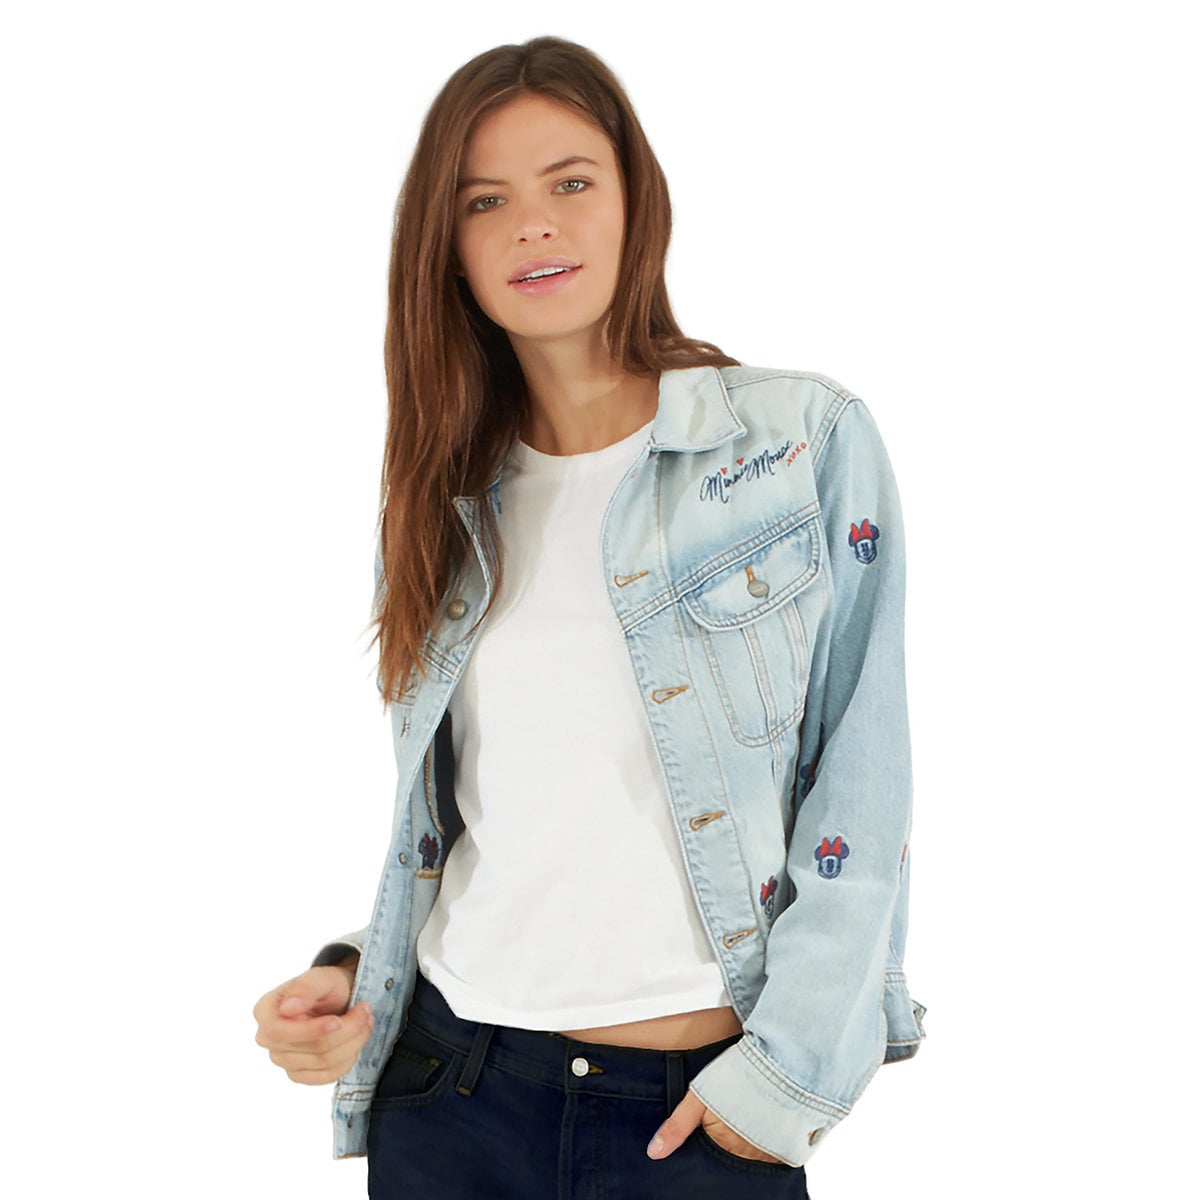 414e4809dc8 Product Image of Minnie Mouse Embroidered Denim Jacket by SIWY   1